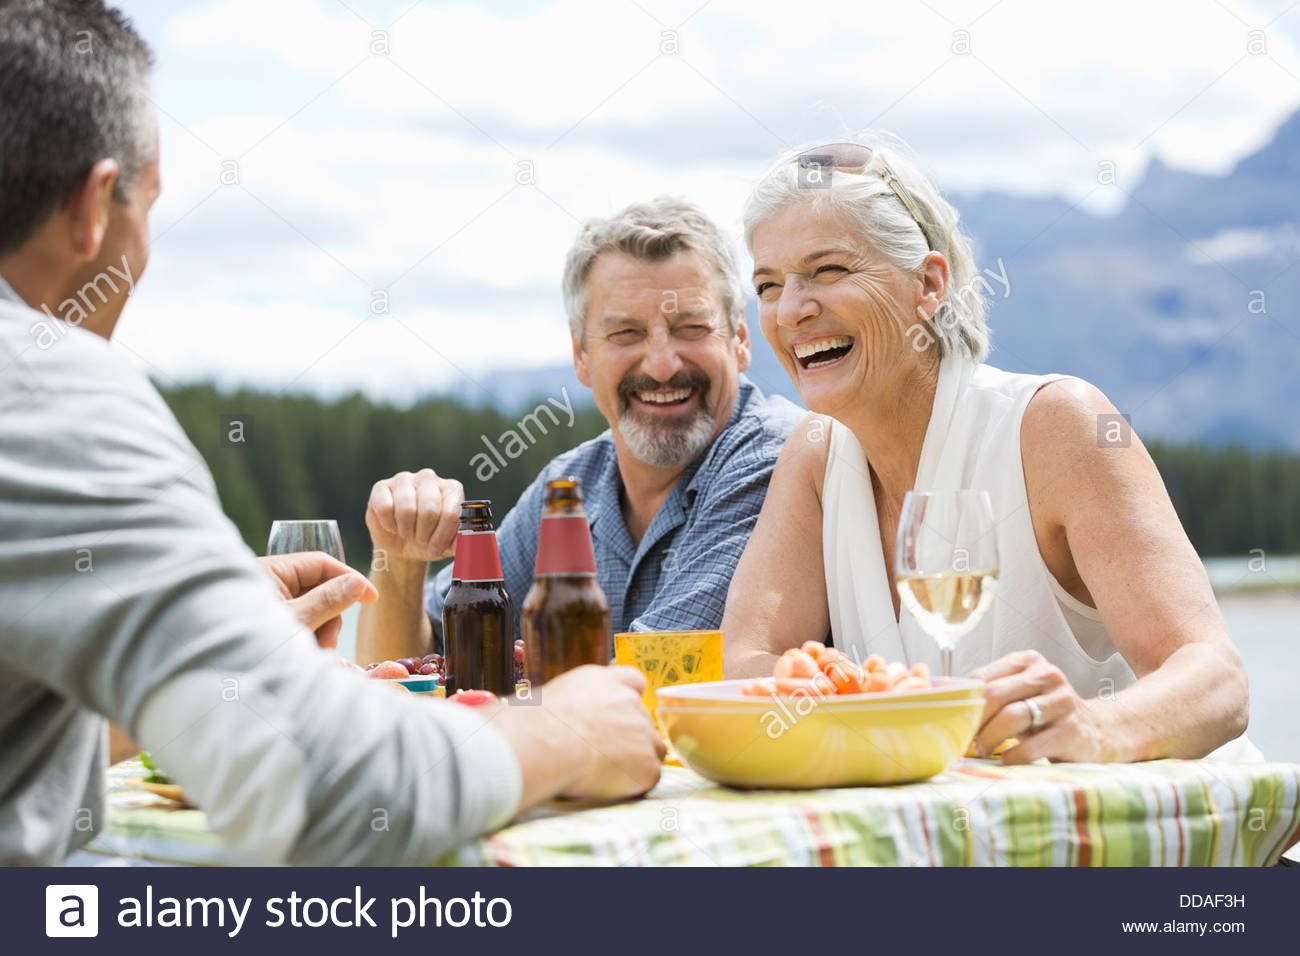 Happy couple enjoying outdoor picnic with friends - Stock Image